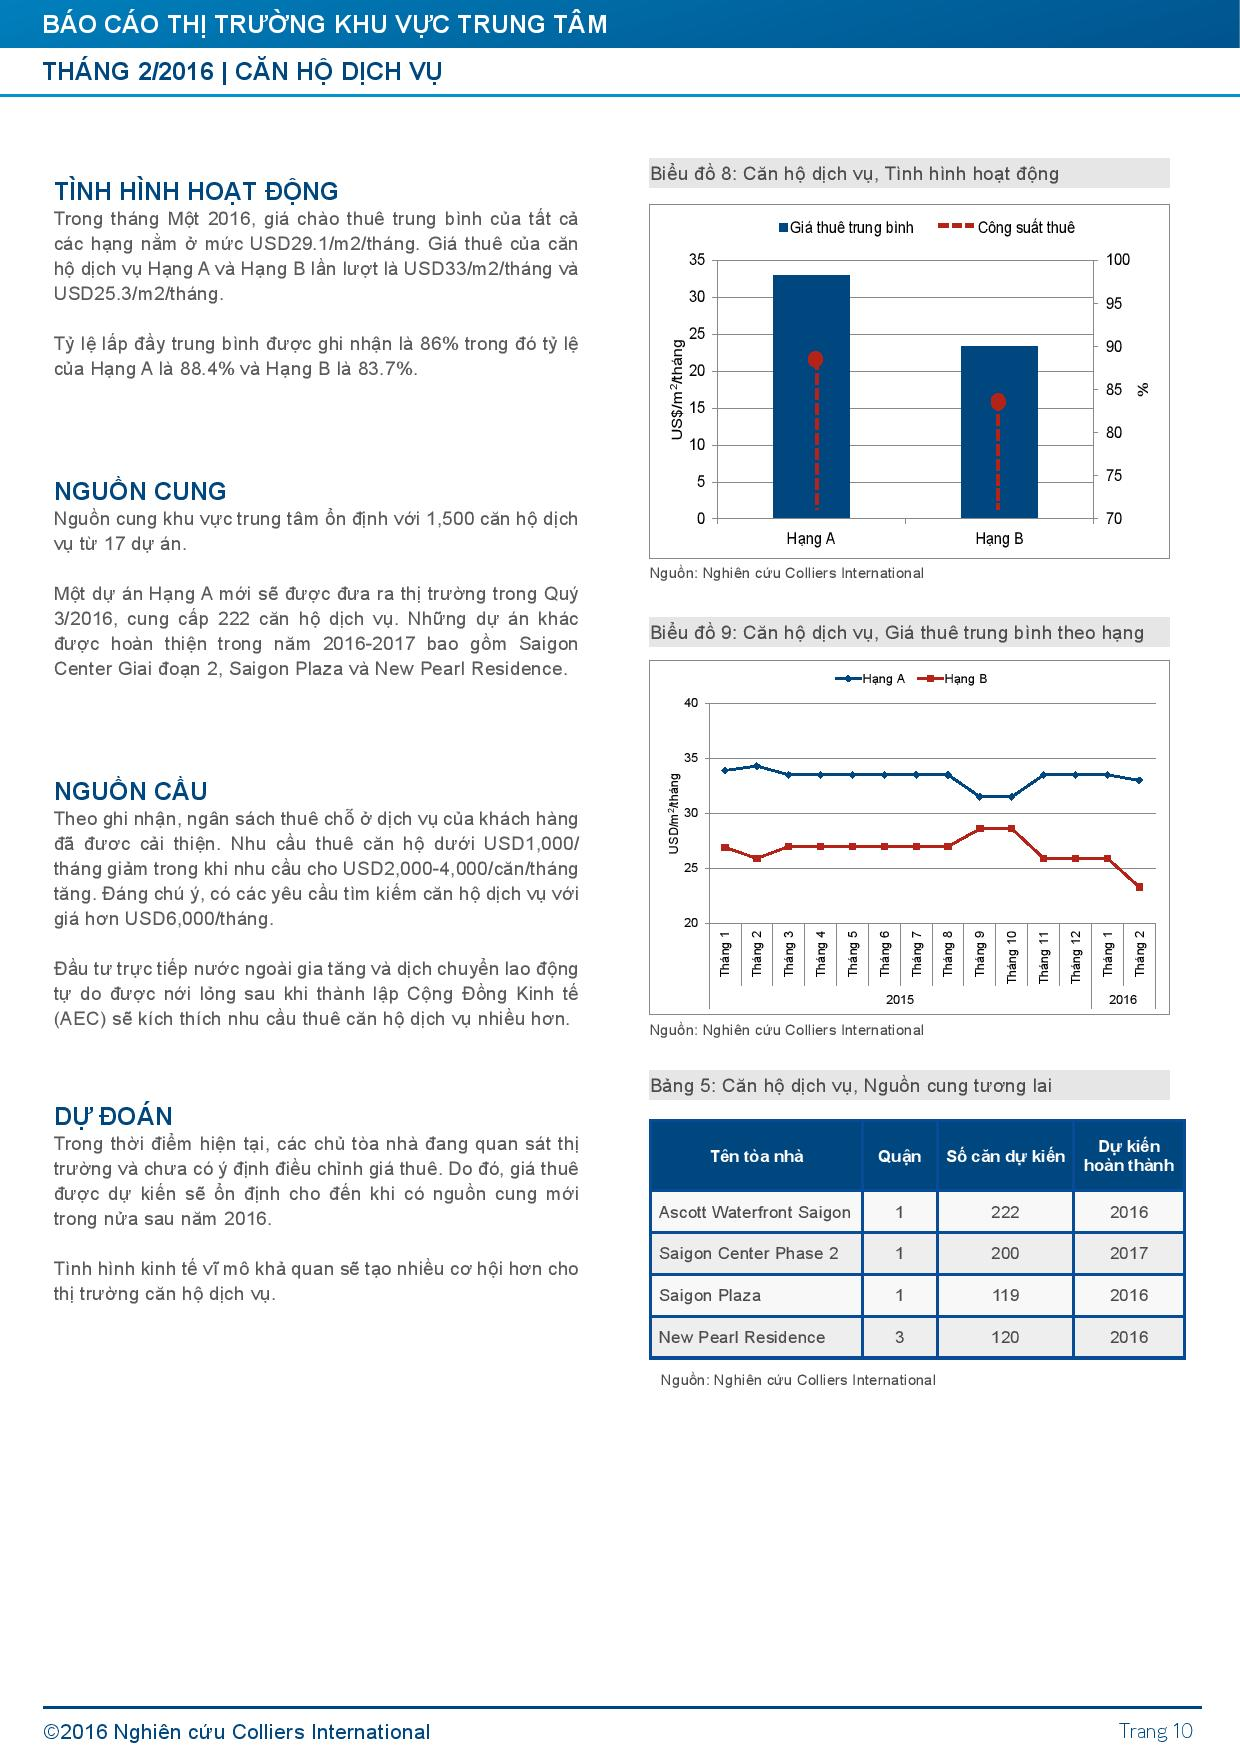 Colliers_HCMC_CBD report_Feb 2016_VIE-page-010